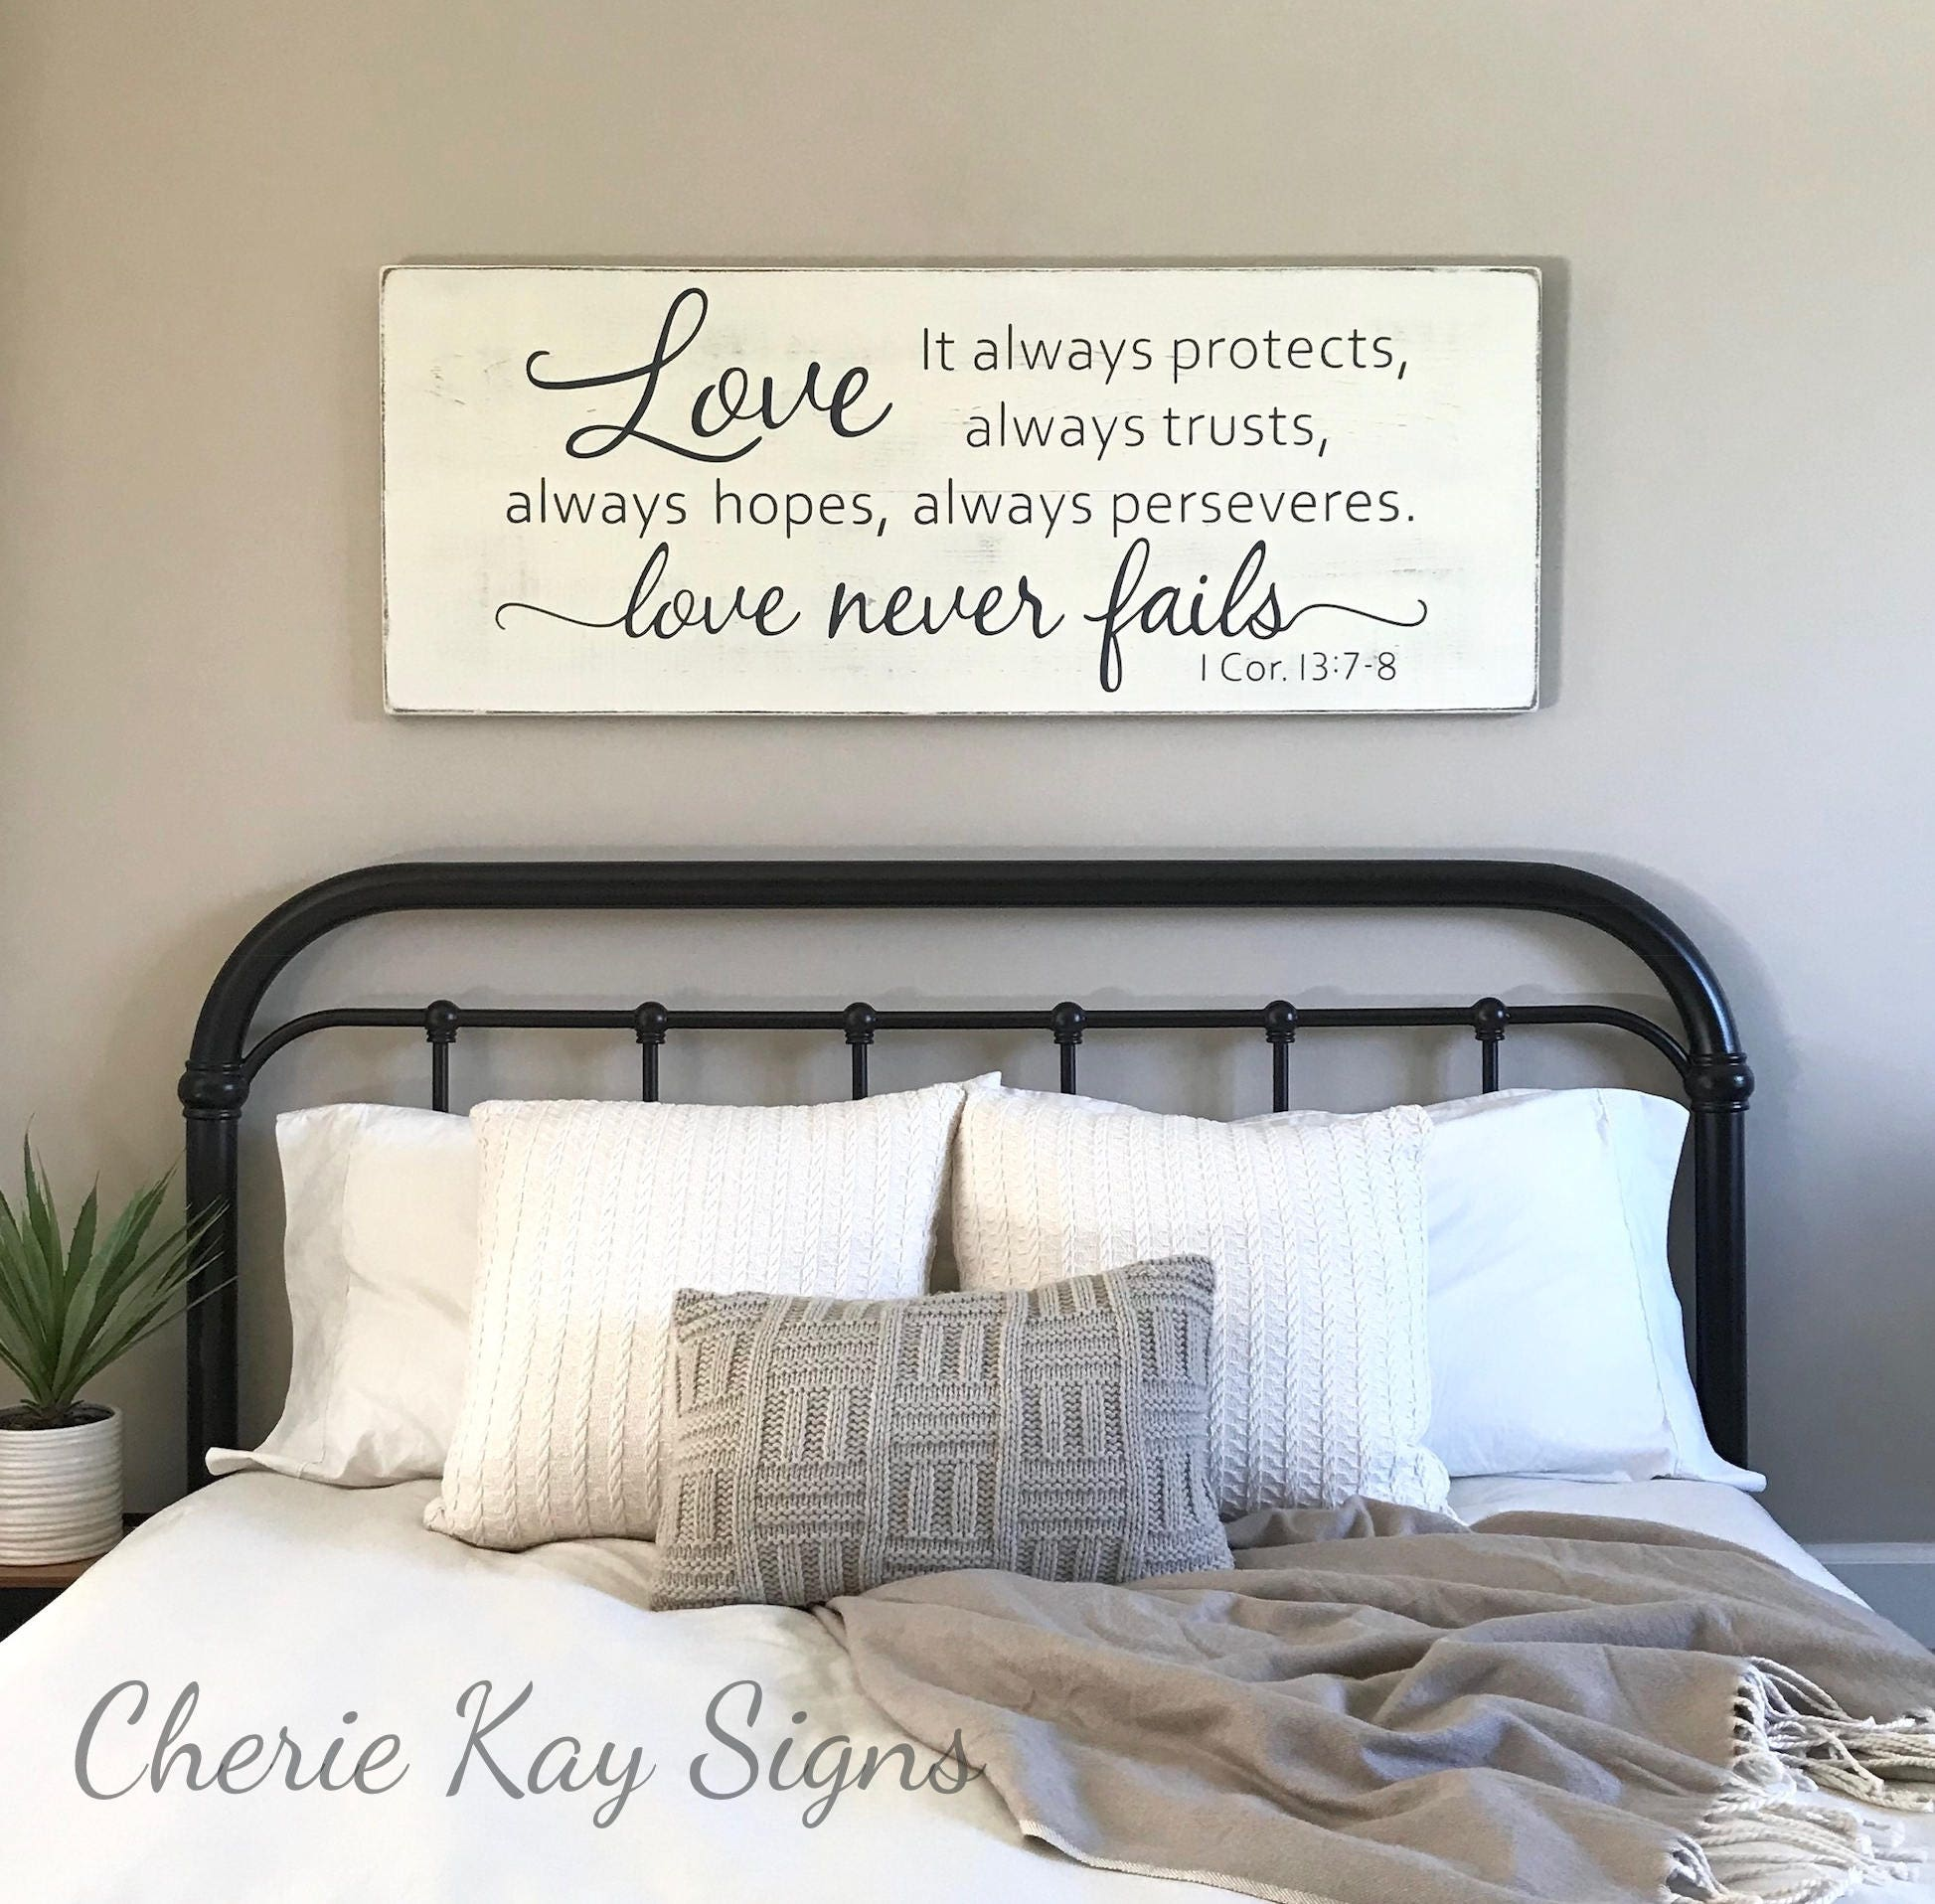 bedroom wall decorations master bedroom wall decor never fails 1 corinthians 10732